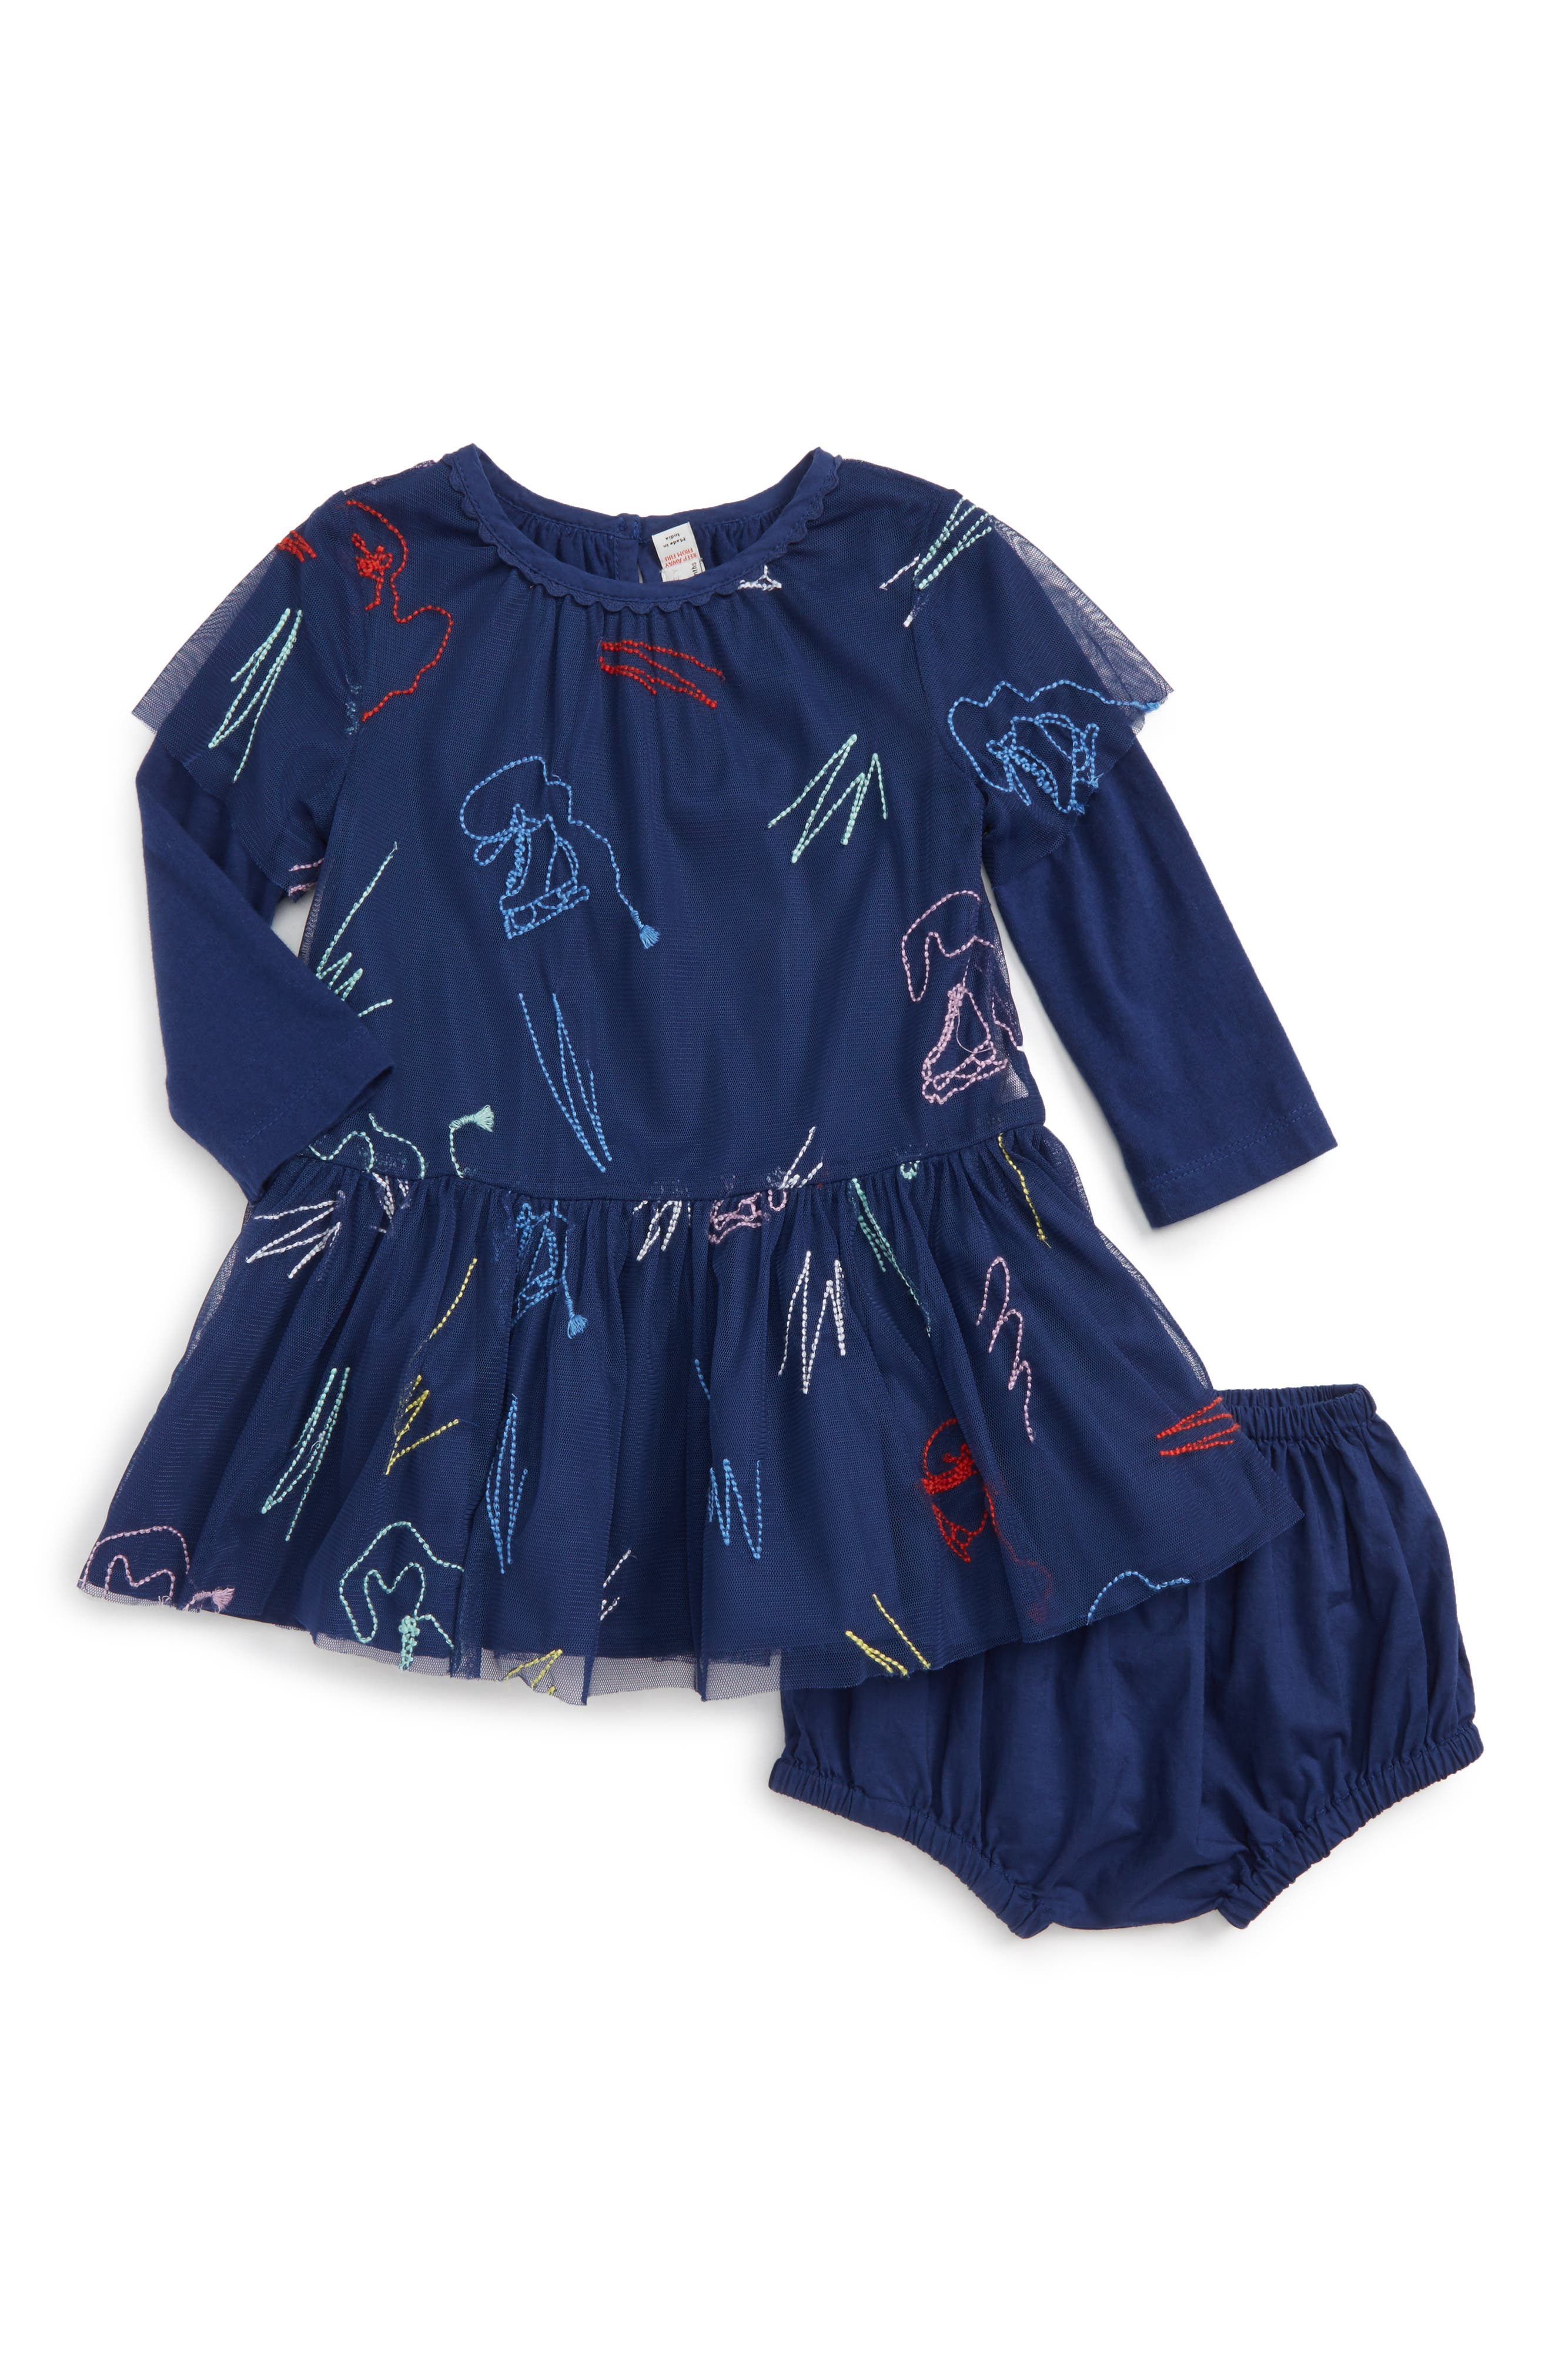 Kids Embroidered Tulle Dress,                         Main,                         color, Blue